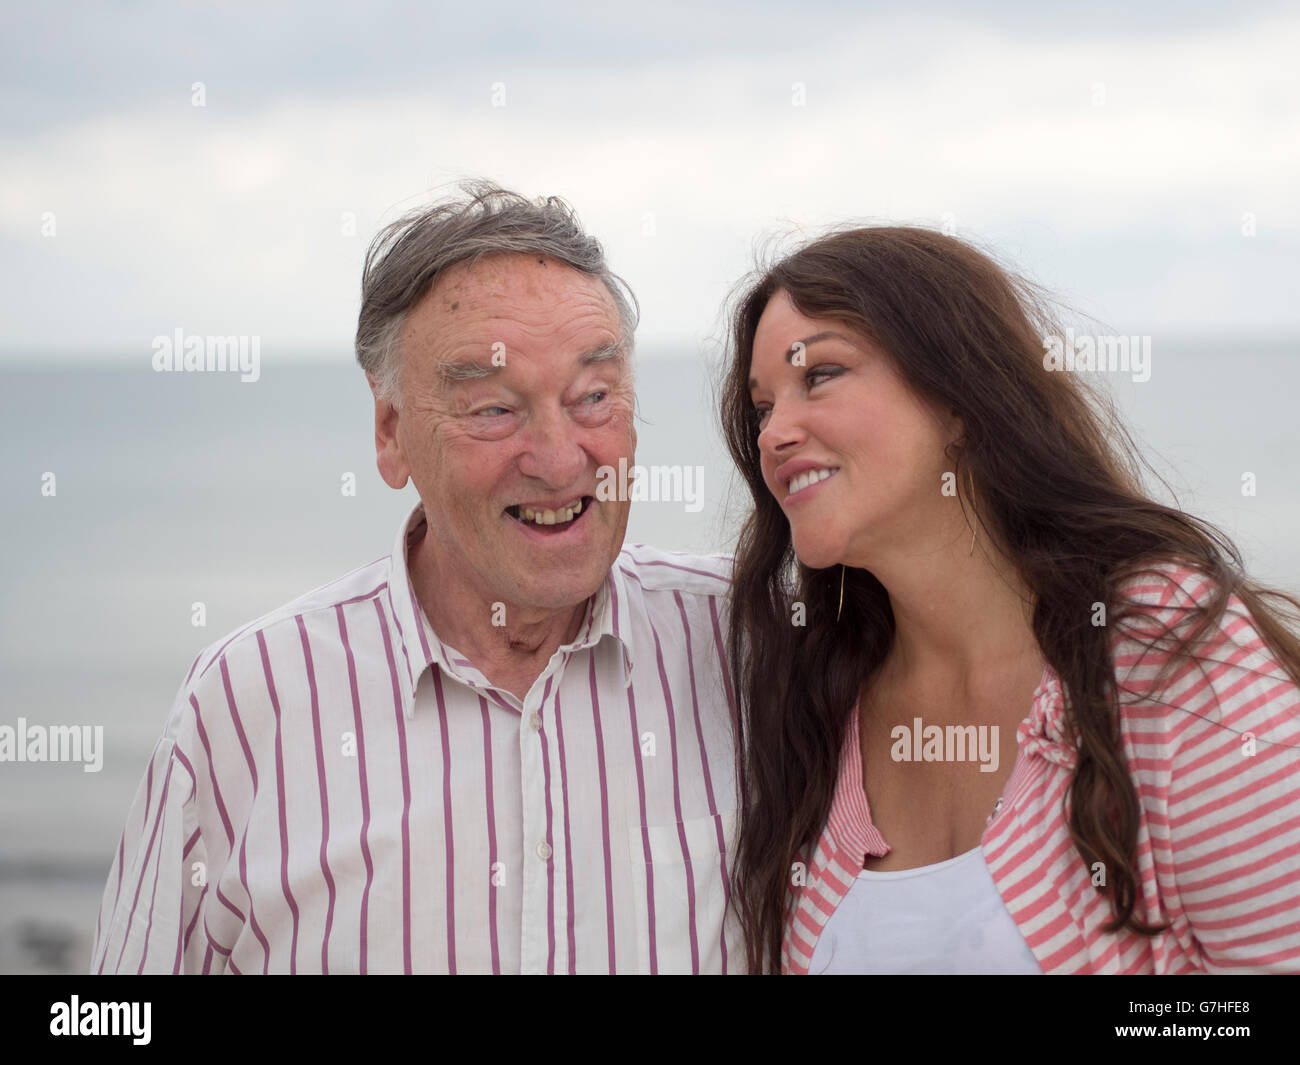 An old man and his niece enjoying a joke at the seaside. - Stock Image